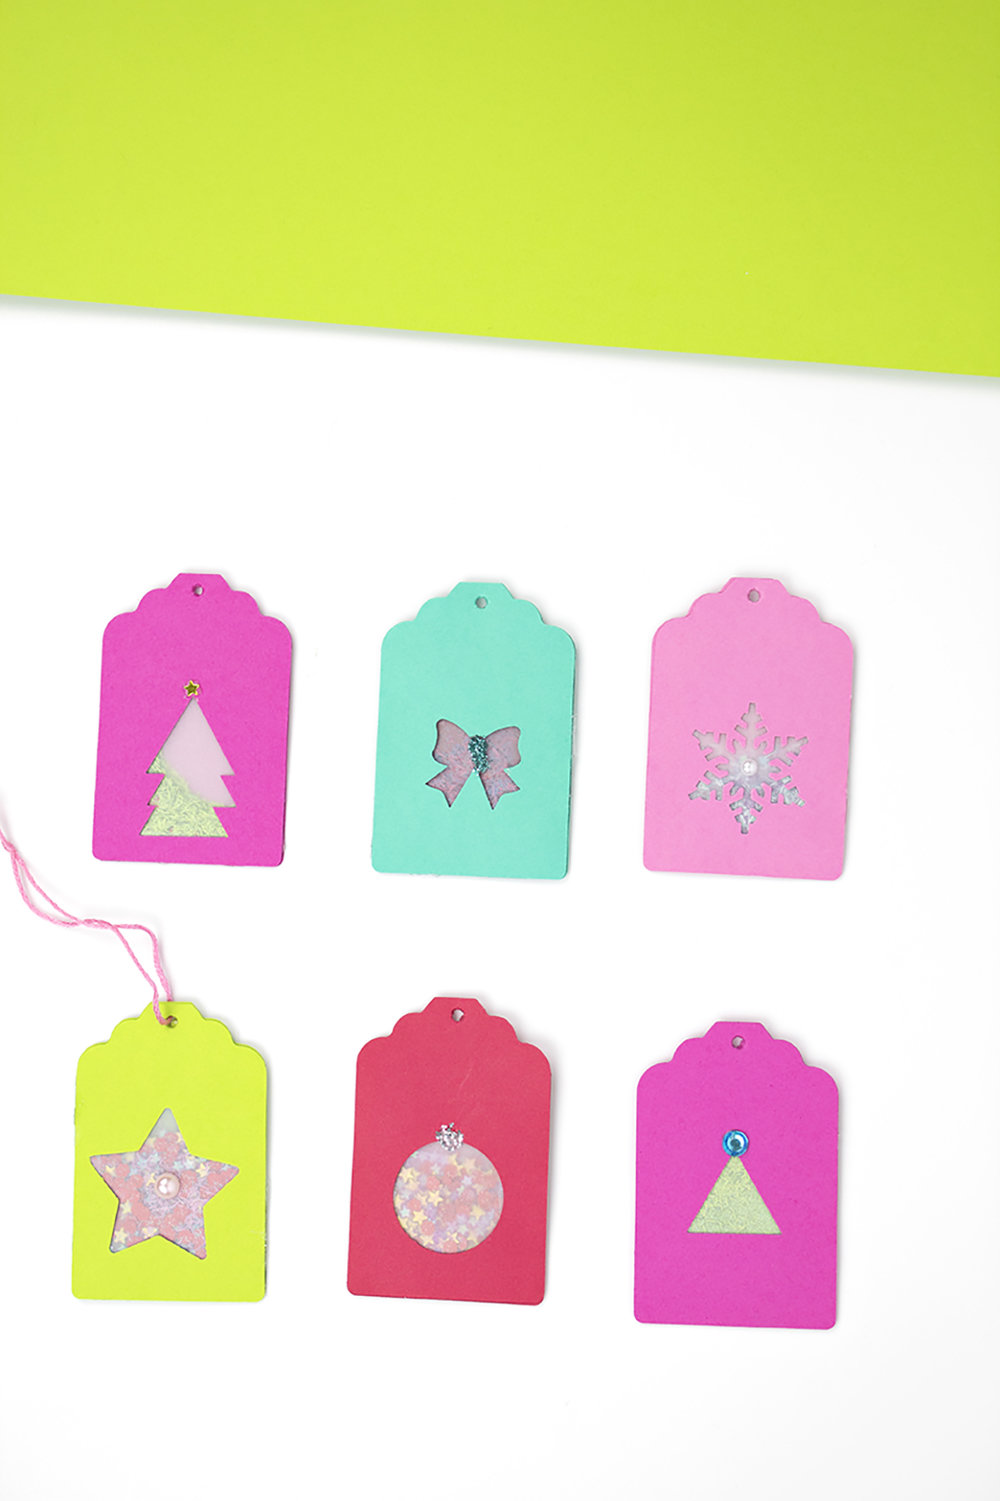 These Confetti Christmas Gift Tags are just what you need for your gifts! Click for the full how-to. #diygifttags #giftwrapideas #diychristmascrafts